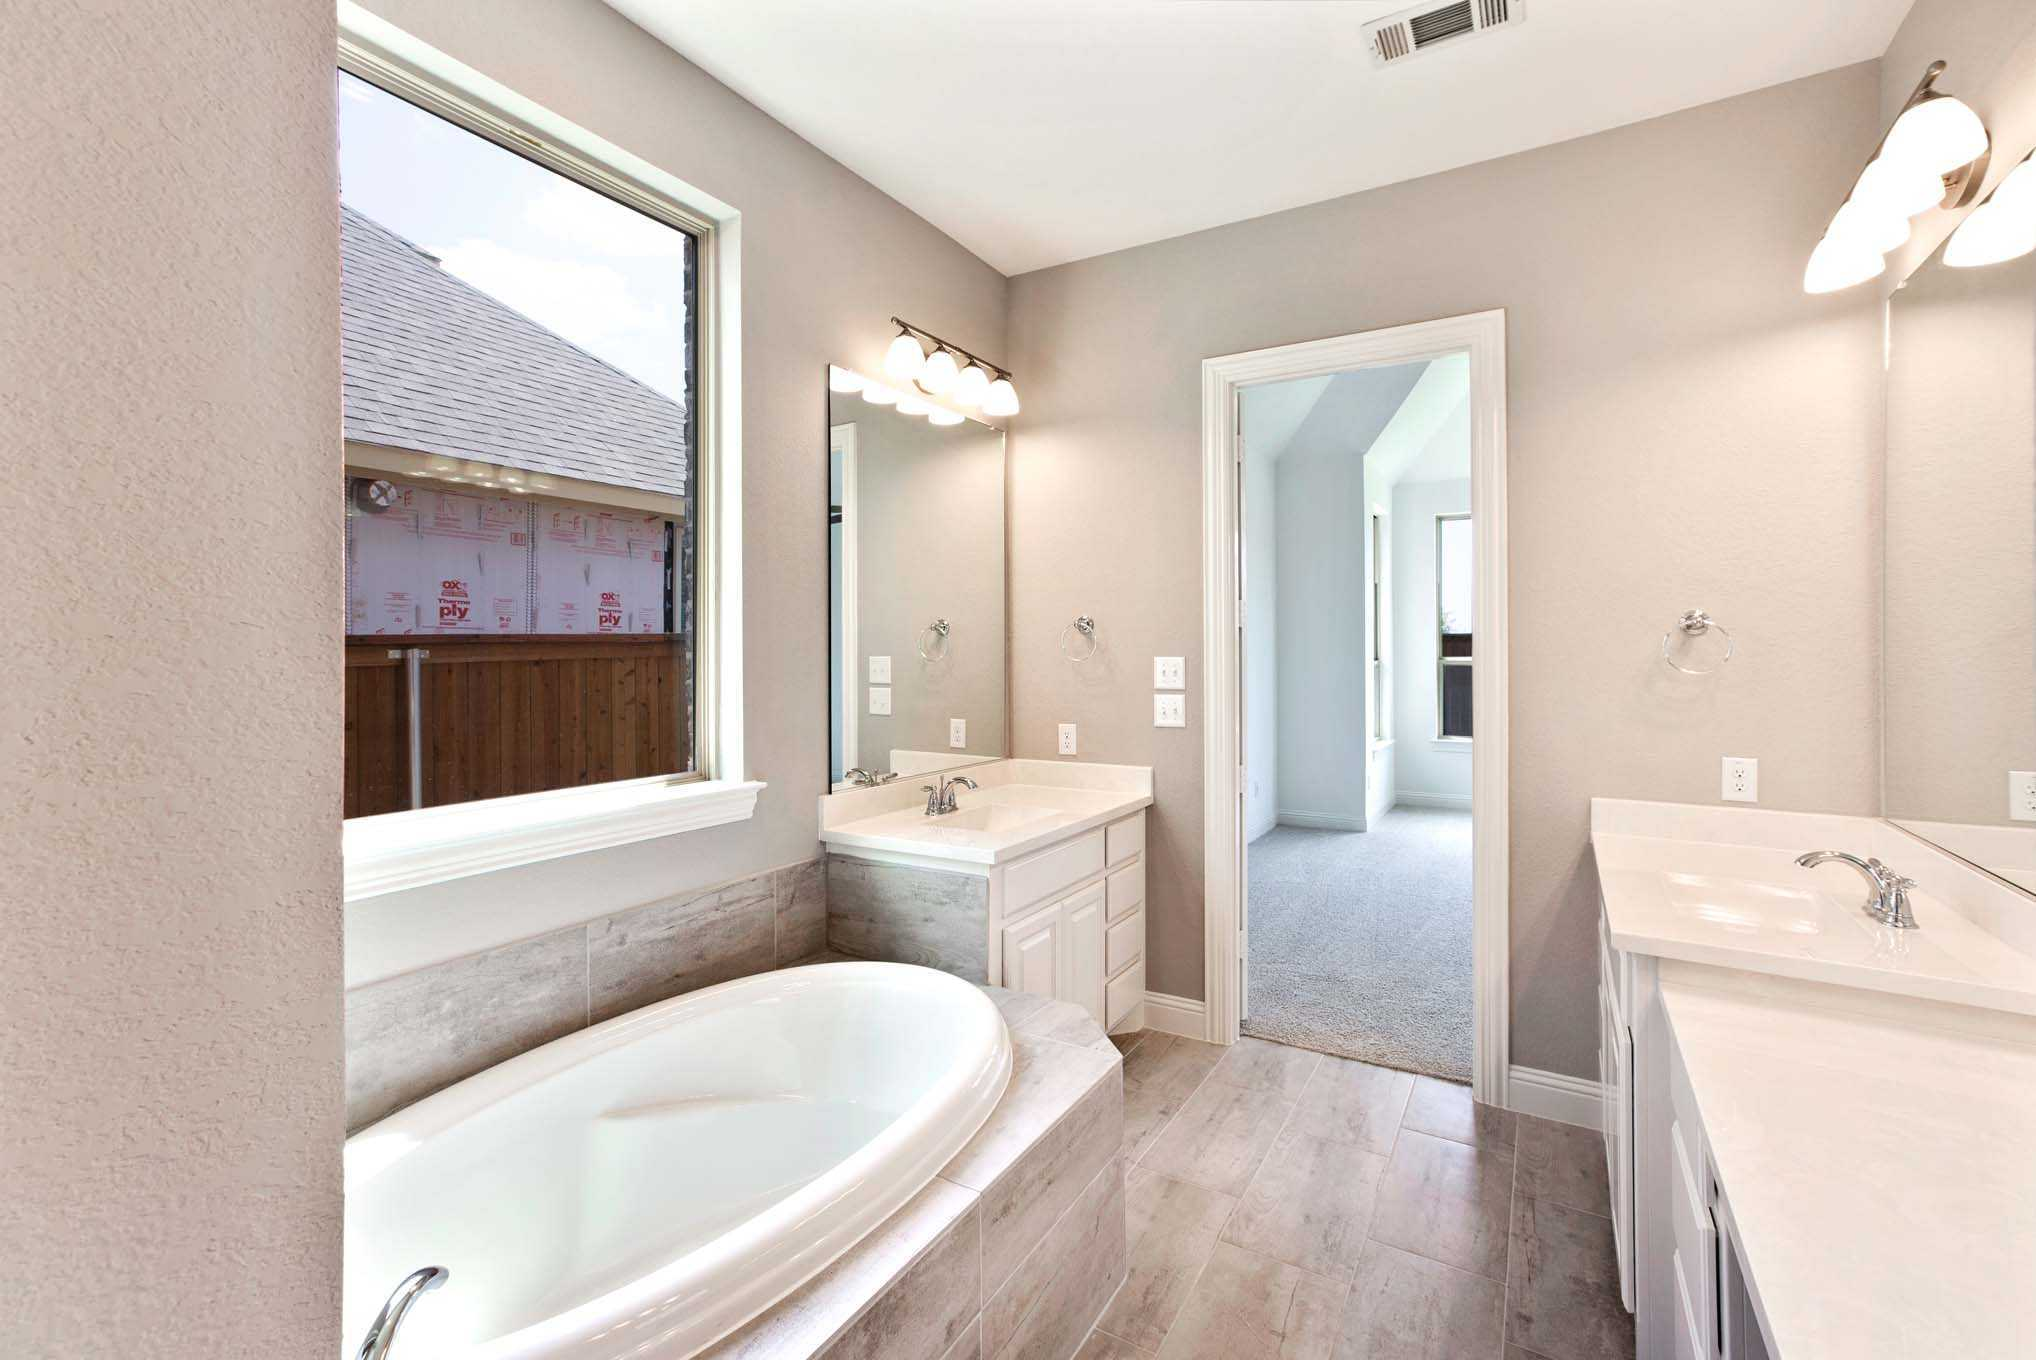 Bathroom featured in the Plan 221 By Highland Homes in Dallas, TX